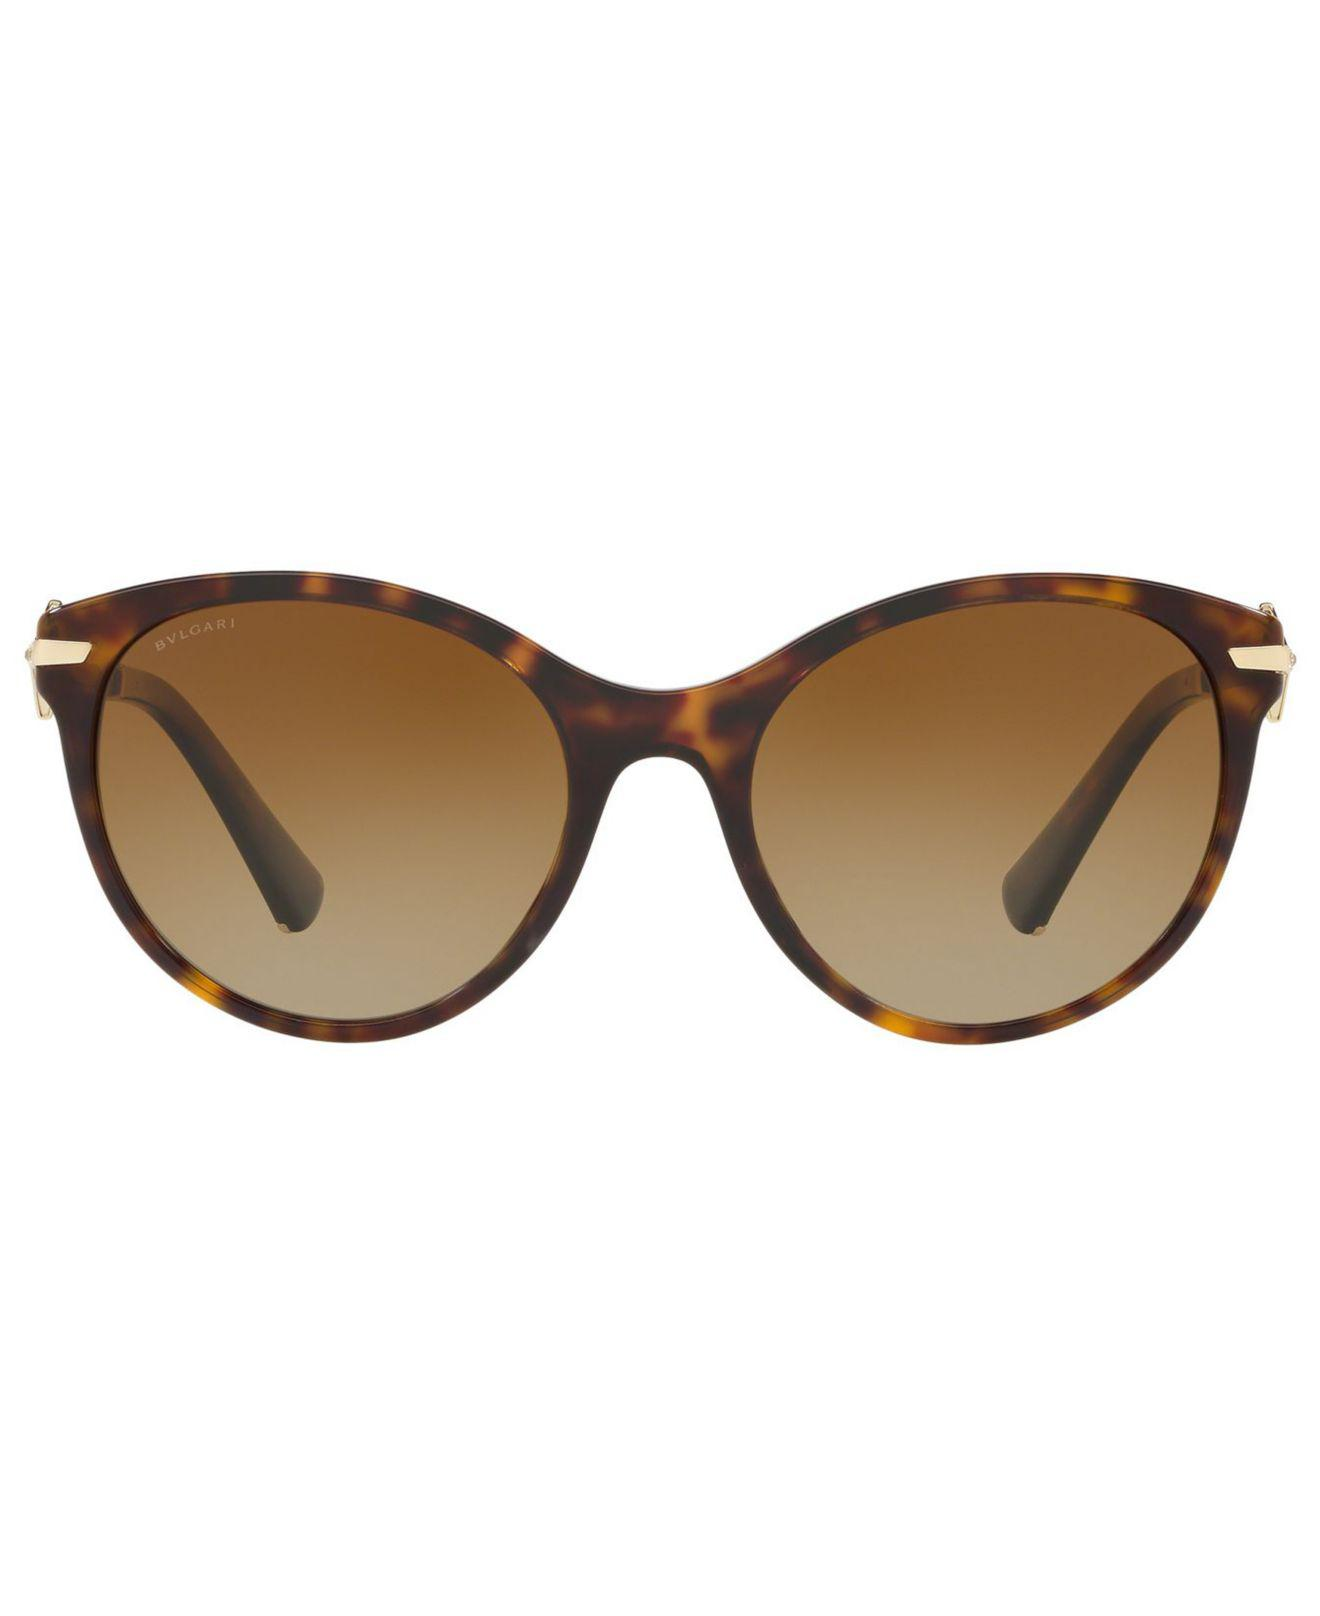 4443ae12ed Lyst - BVLGARI Polarized Sunglasses